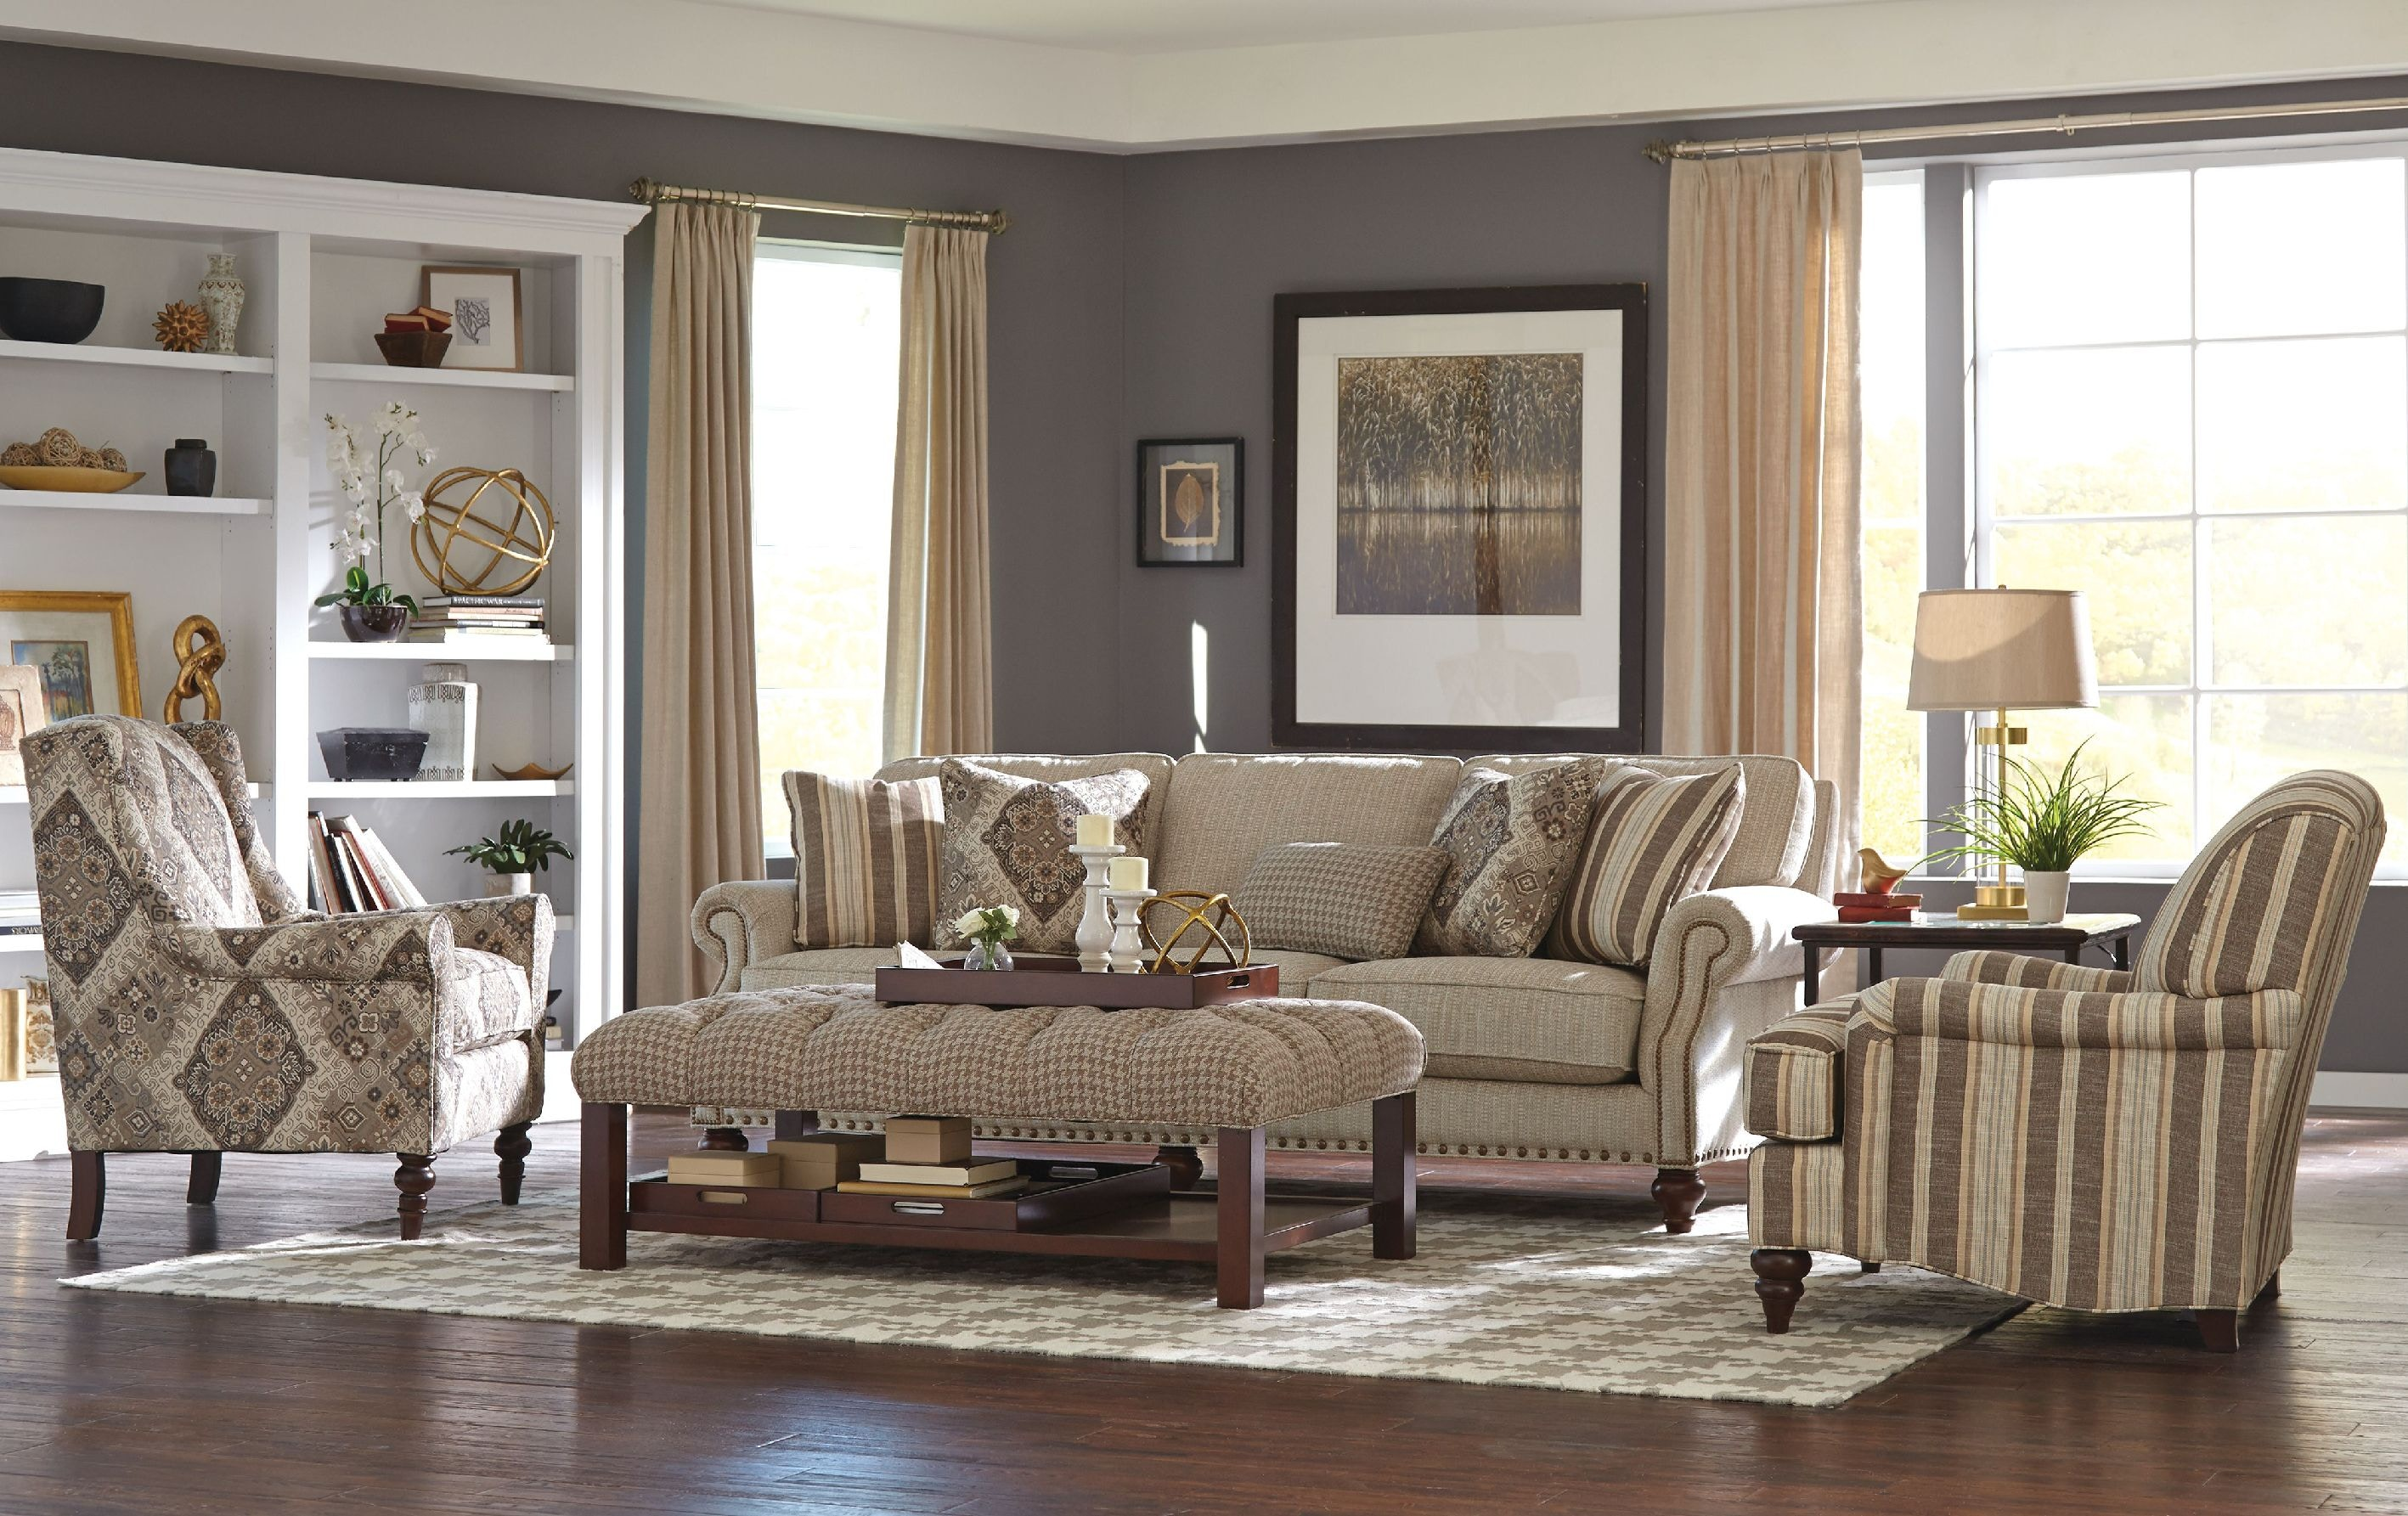 Craftmaster Sofa 762350 · Craftmaster Sofa 762350 ...